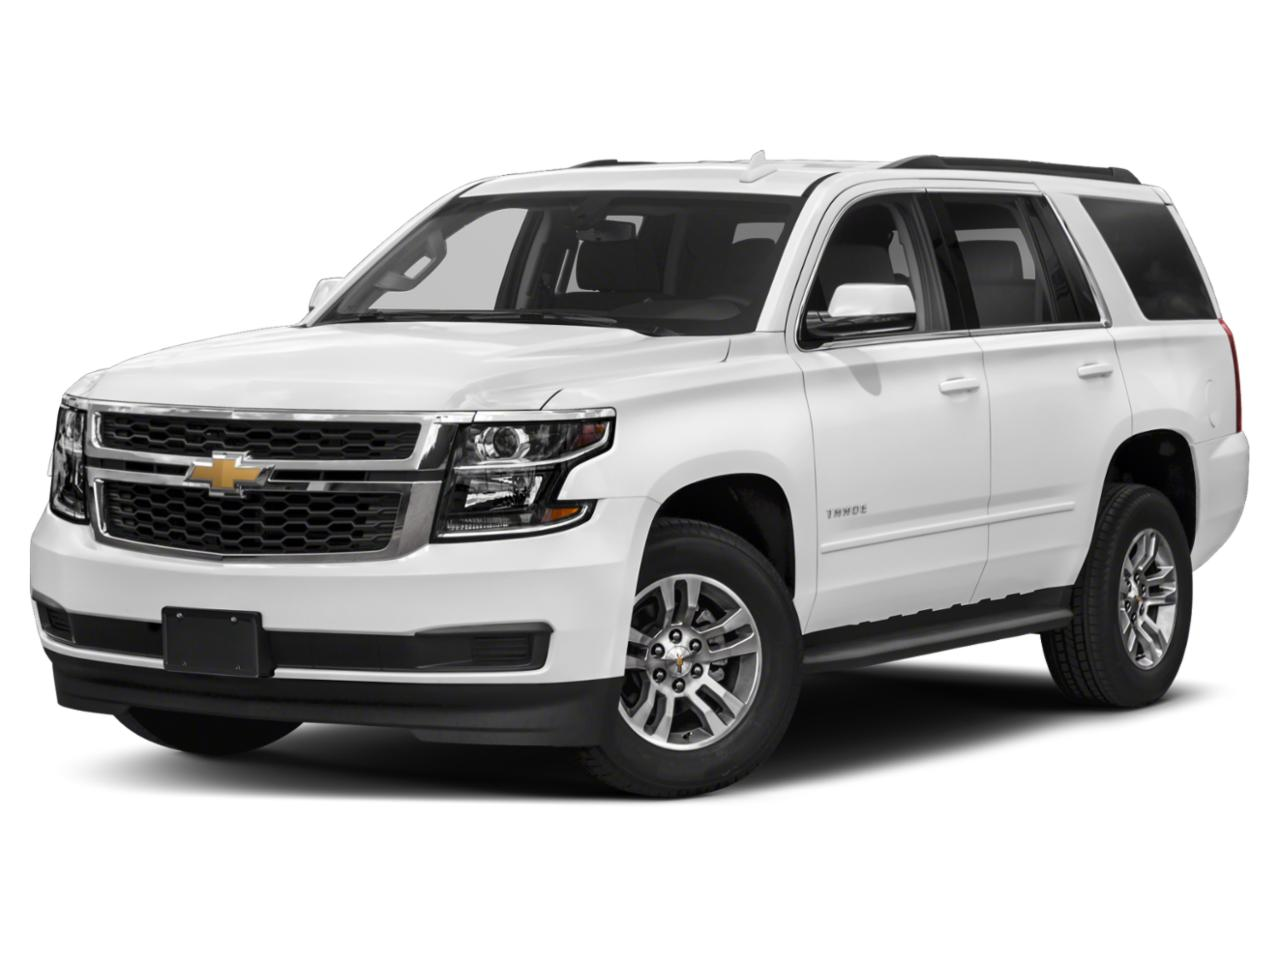 2018 Chevrolet Tahoe Vehicle Photo in Nashua, NH 03060